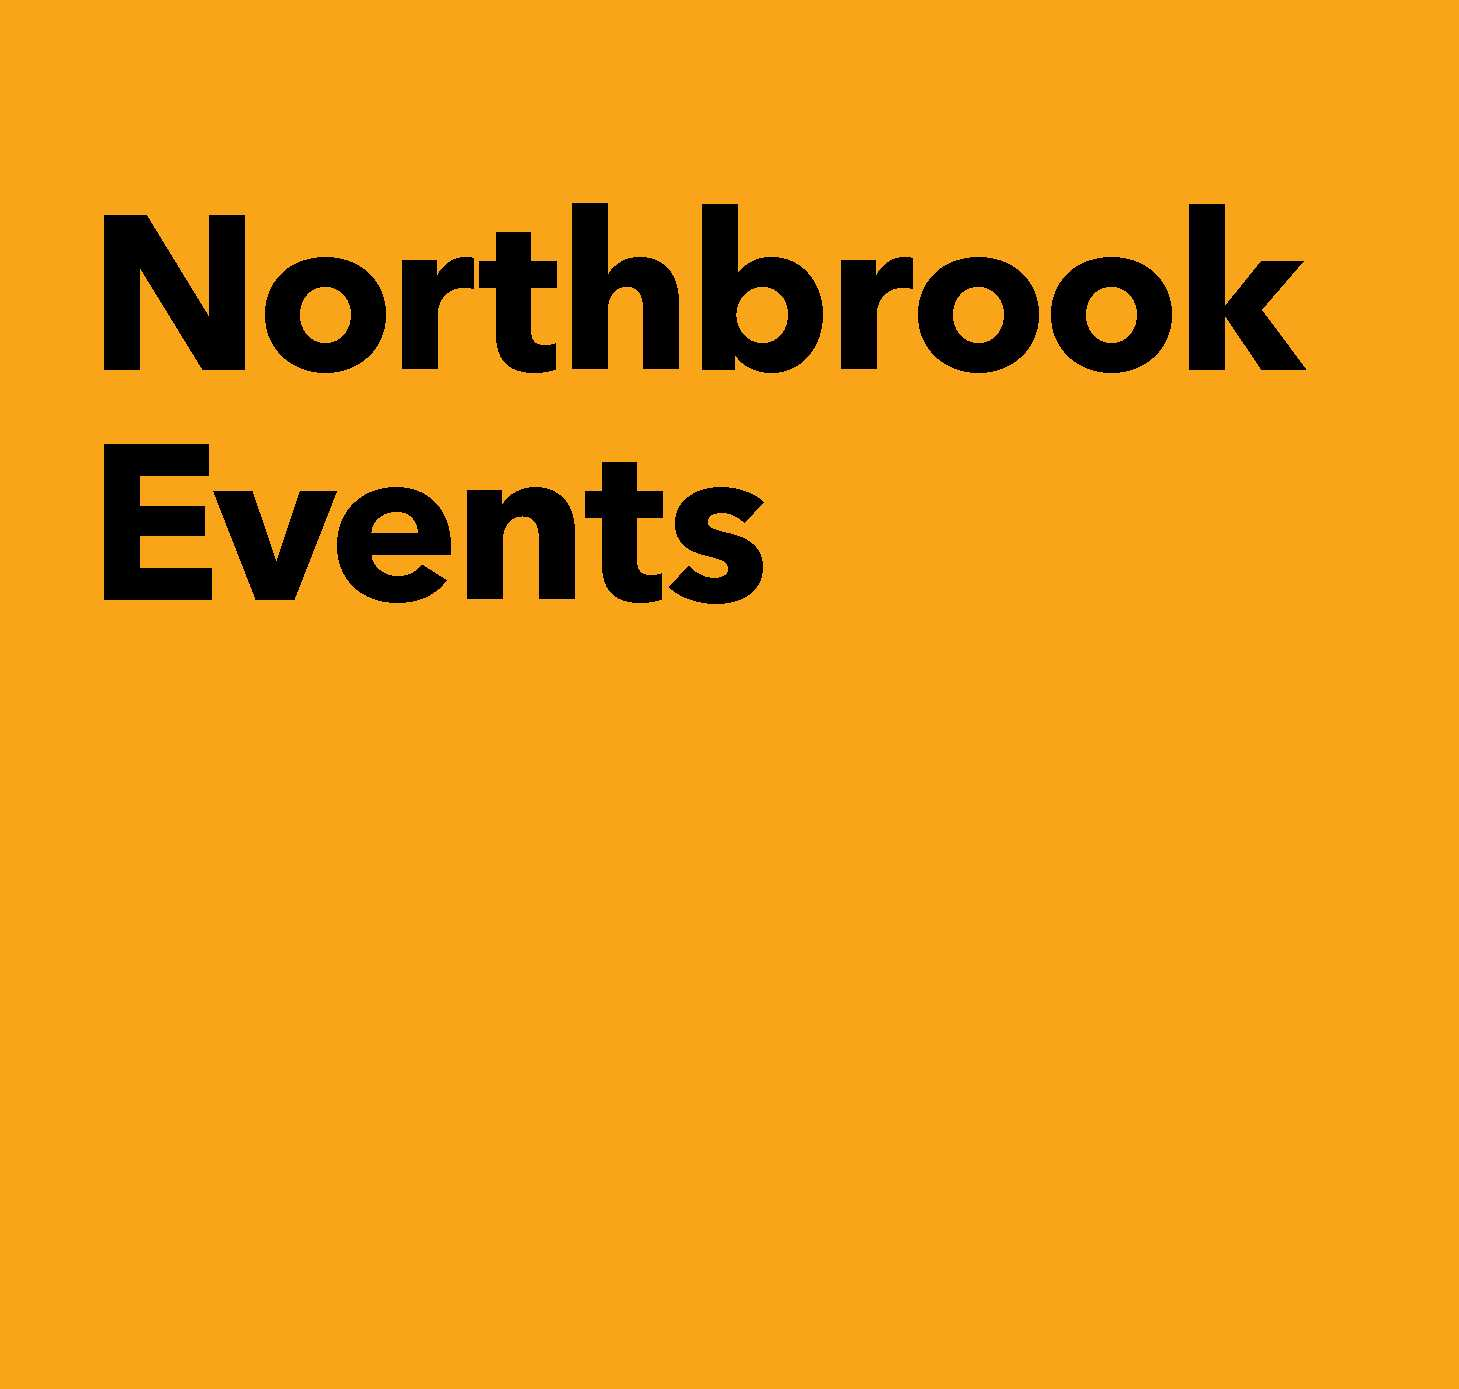 Northbrook Events